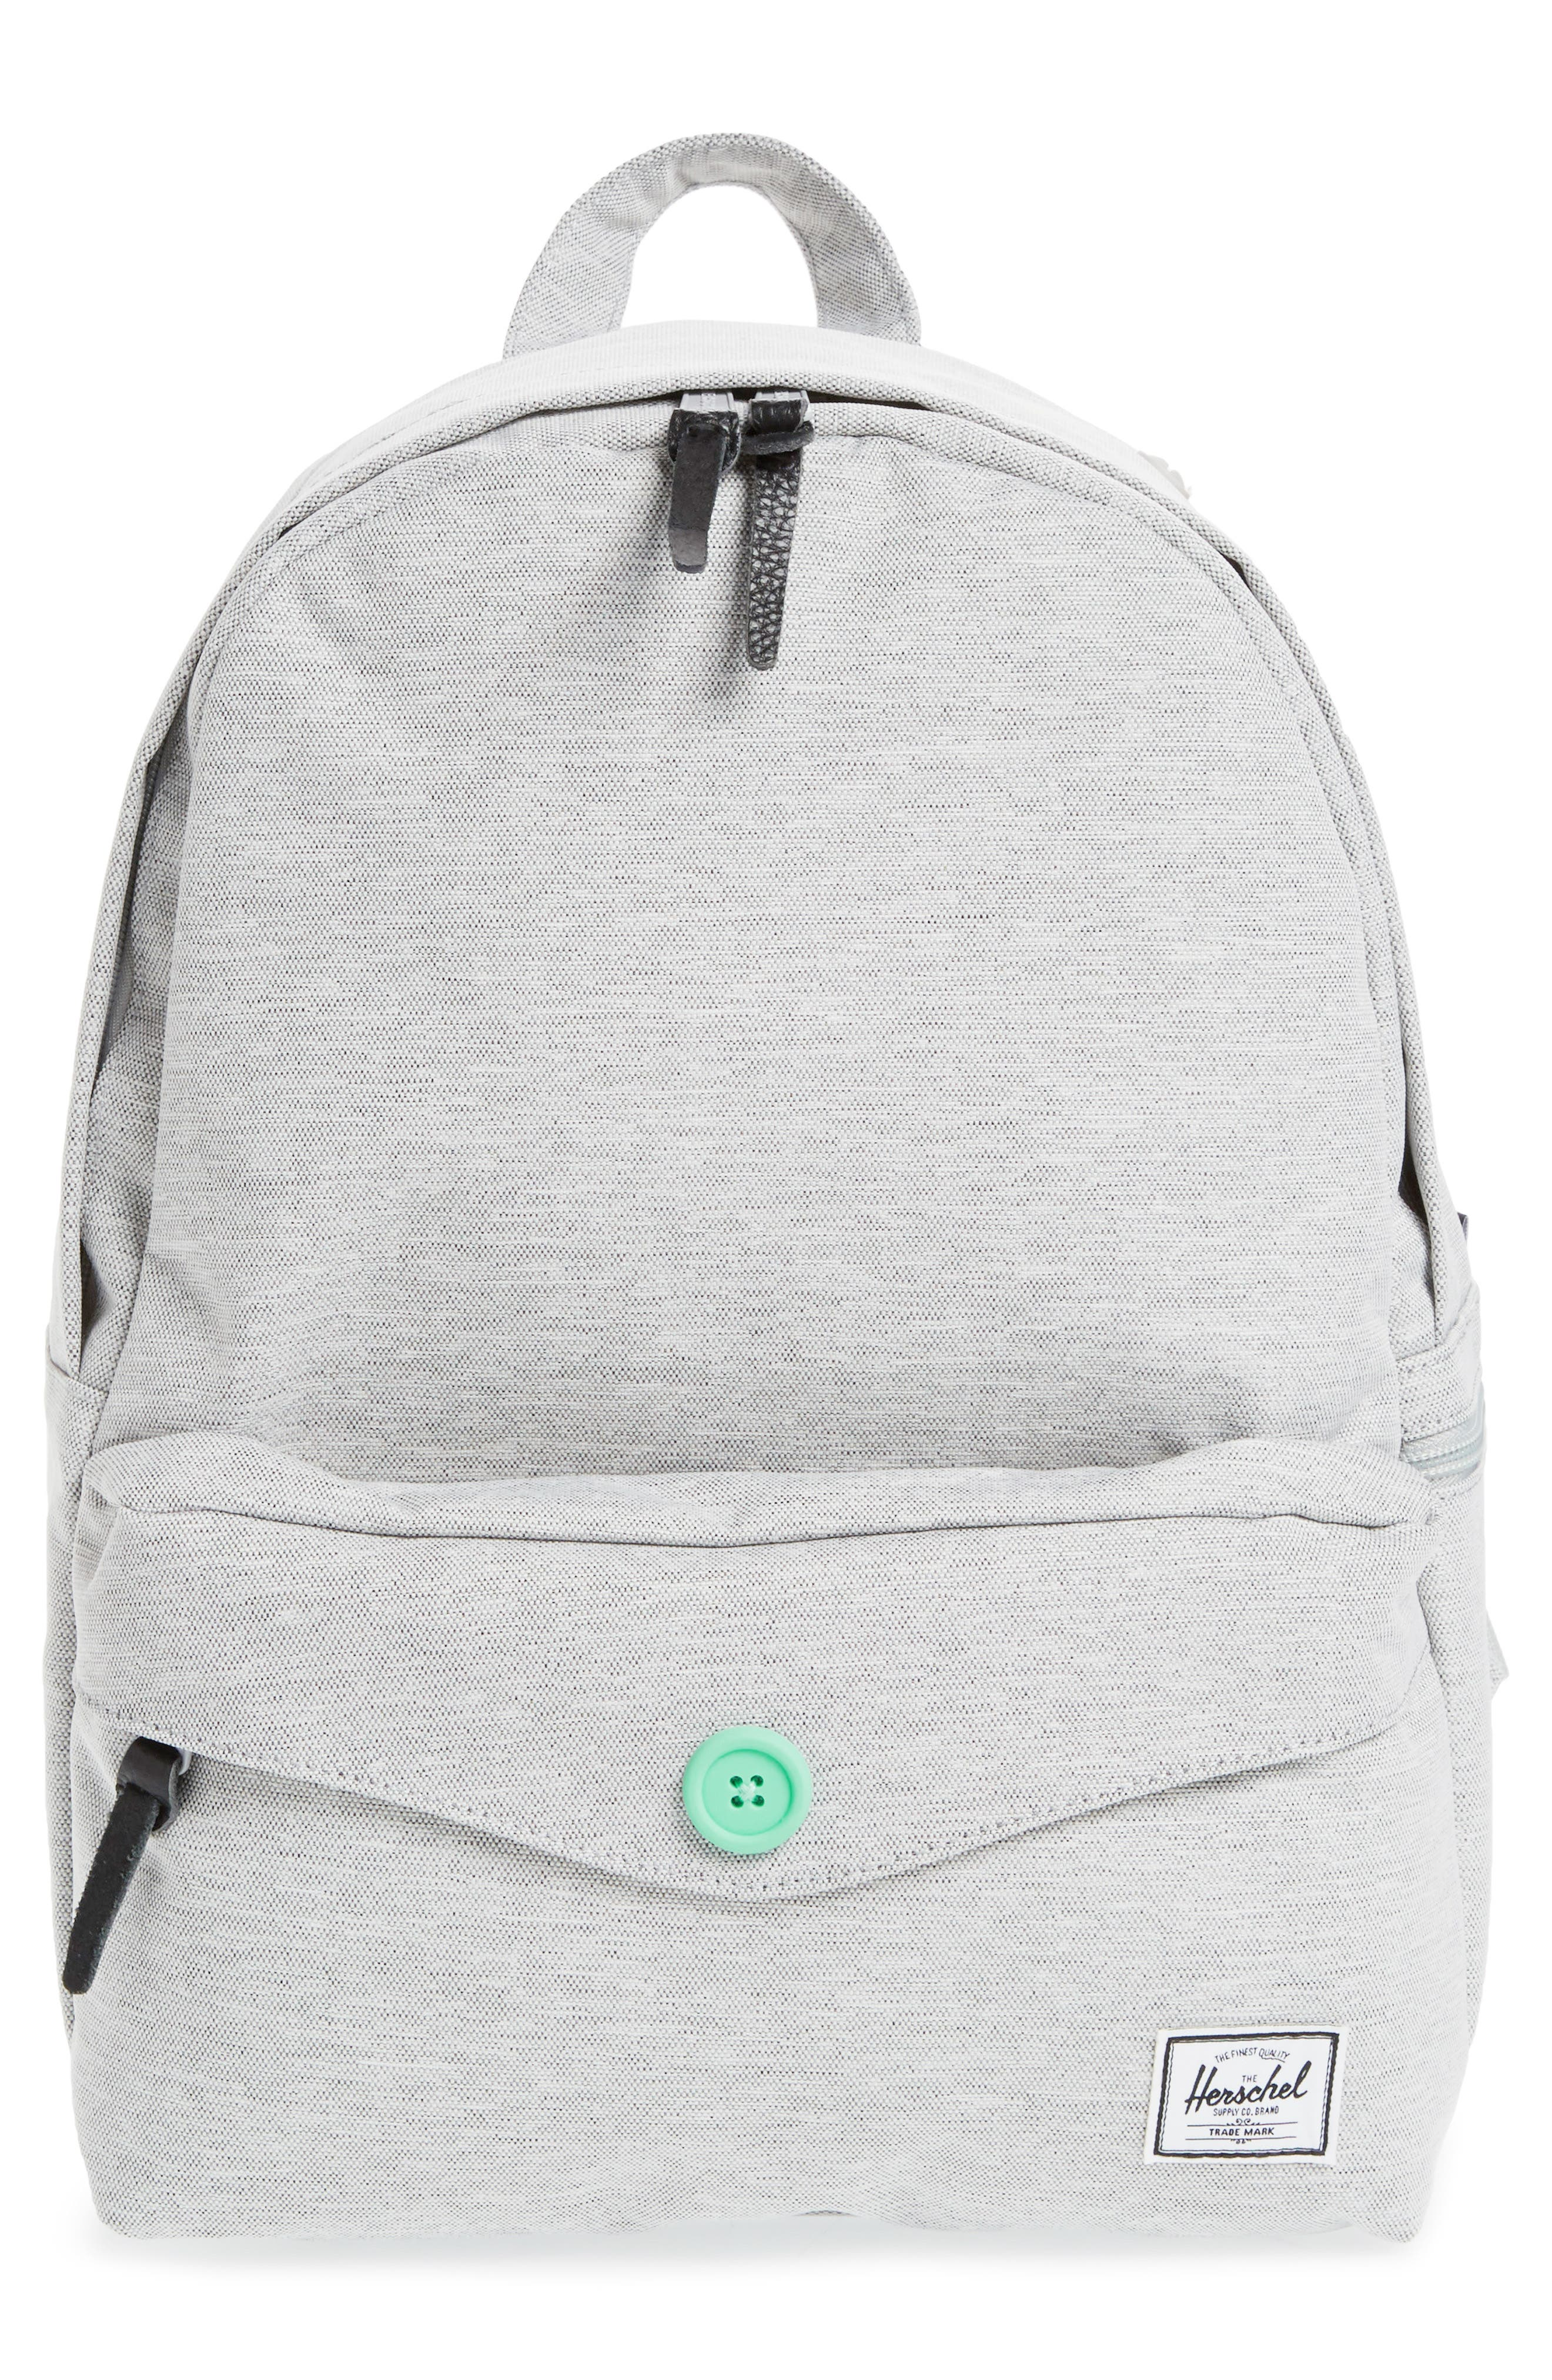 Alternate Image 1 Selected - Herschel Supply Co. 'Sydney' Backpack